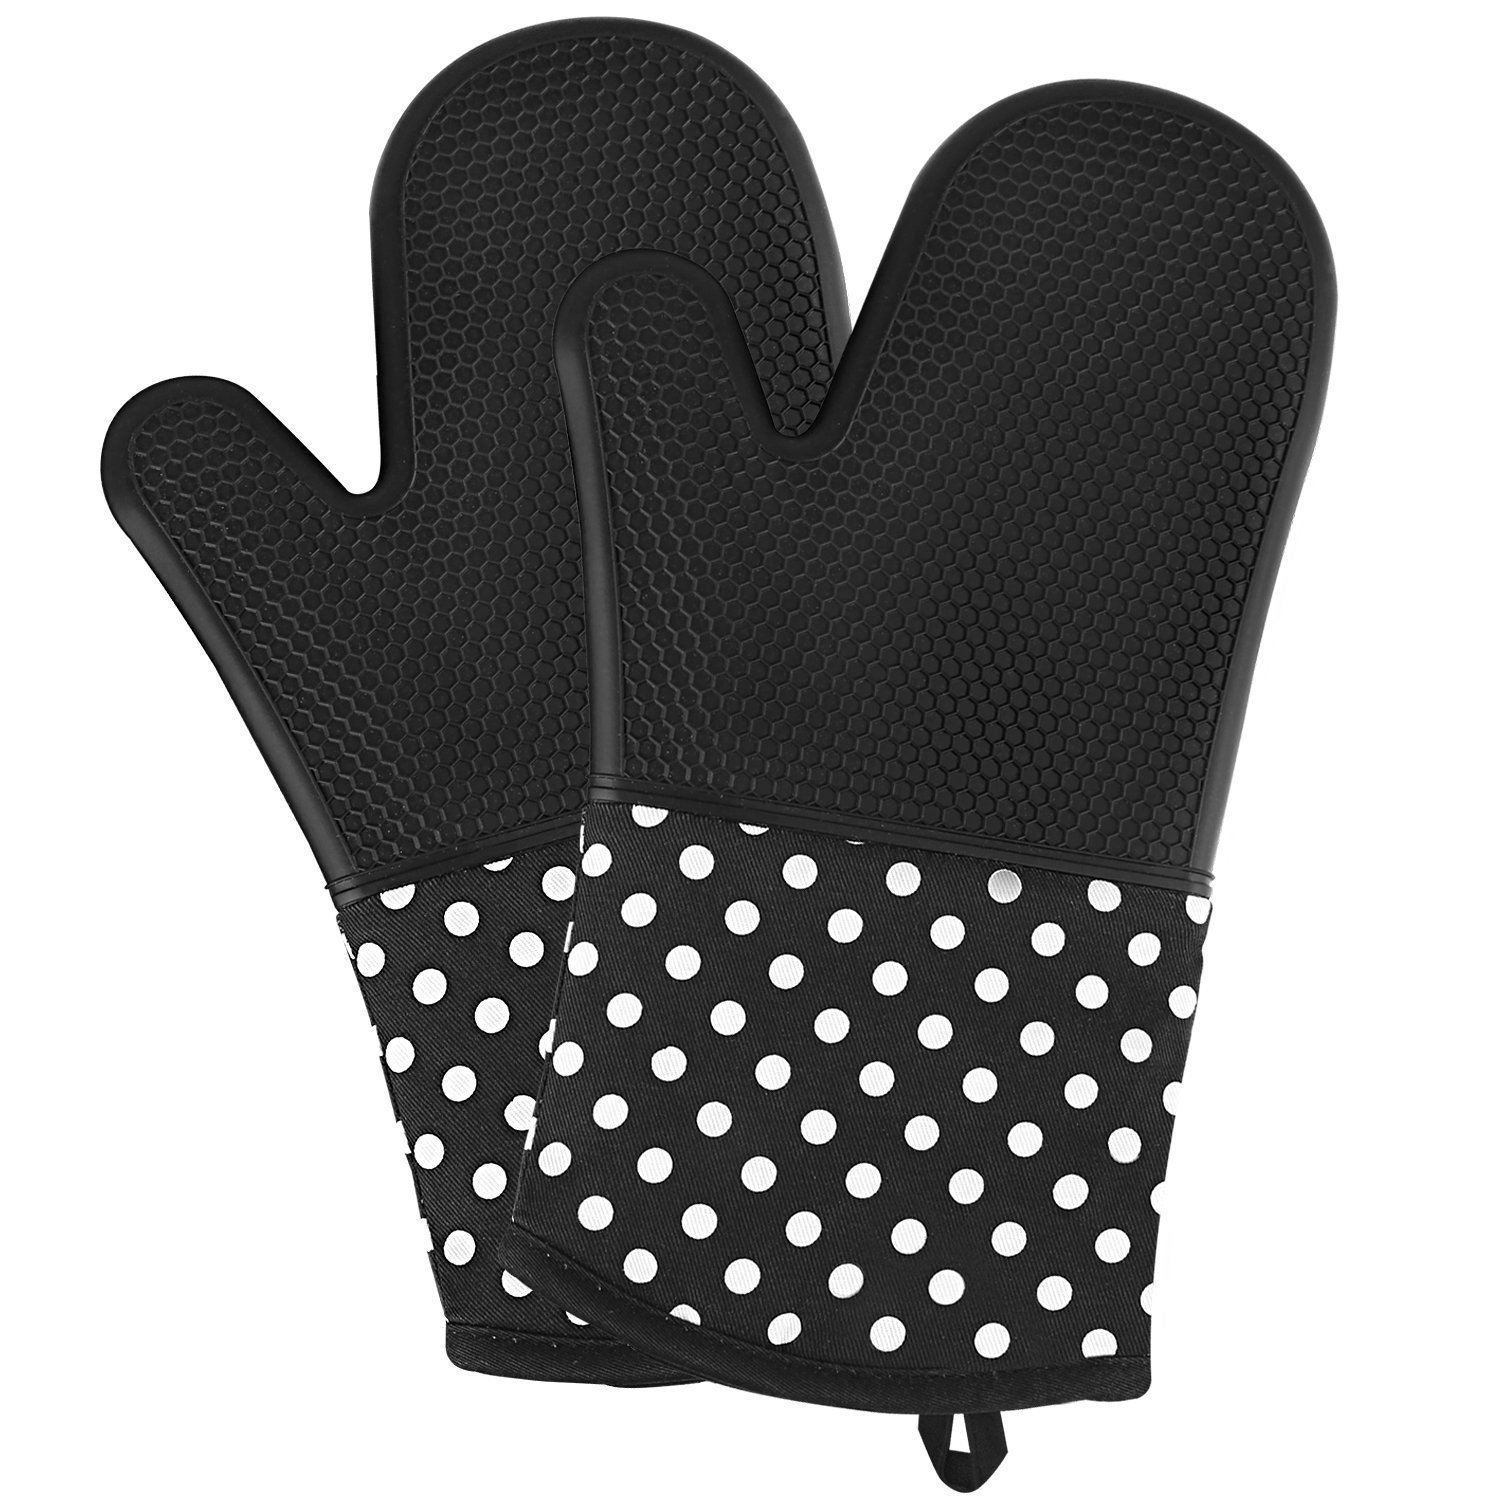 WARMTHOU Silicone Oven Mitts Heat Resistant to 572°F Professional Grade Kitchen Non-Slip Oven Gloves Potholders for Baking Cooking Microwave Pizza BBQ - 1 Pair (Black)